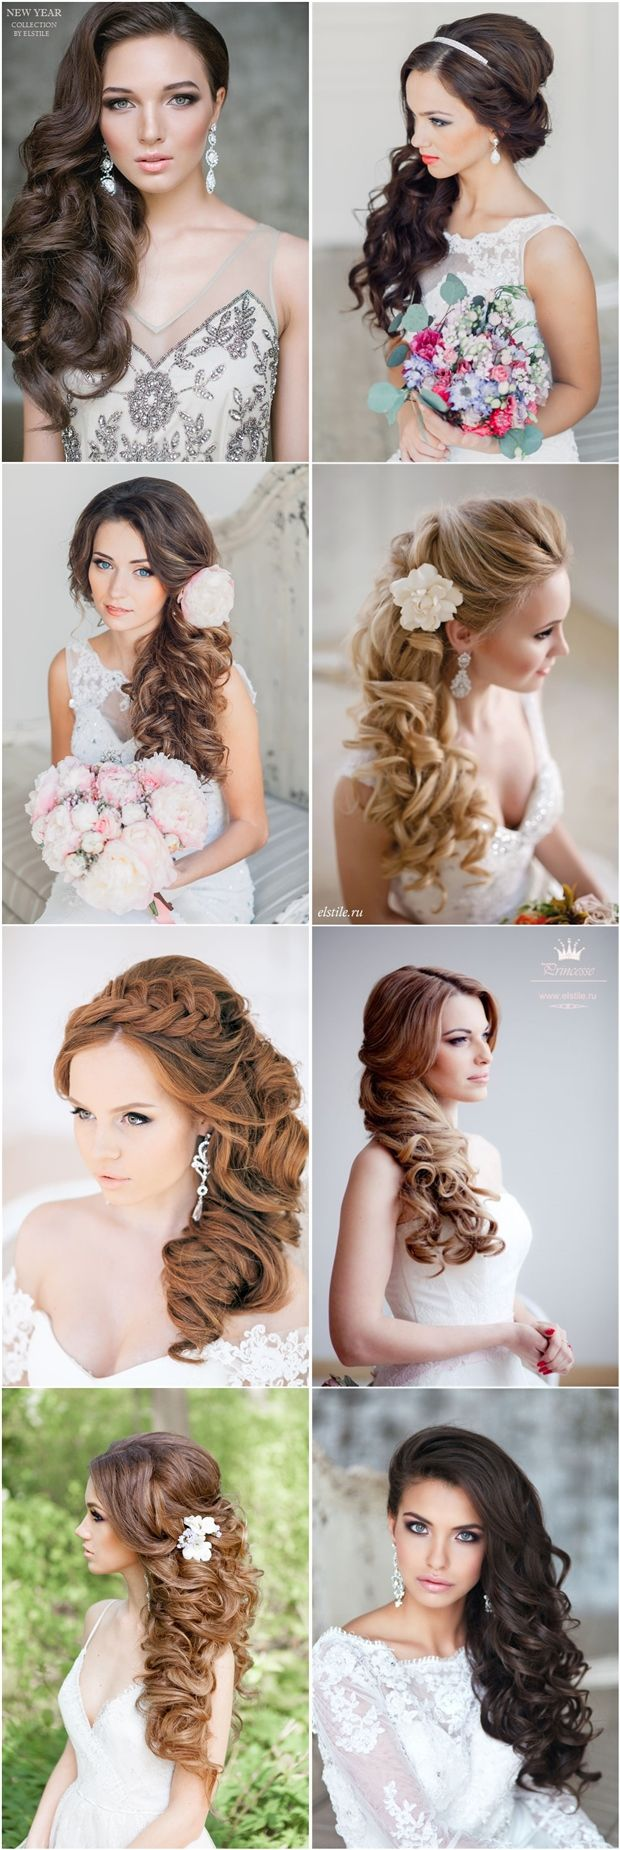 20 Gorgeous Wedding Hairstyles For Long Hair: 20 Gorgeous Half Up Wedding Hairstyle Ideas